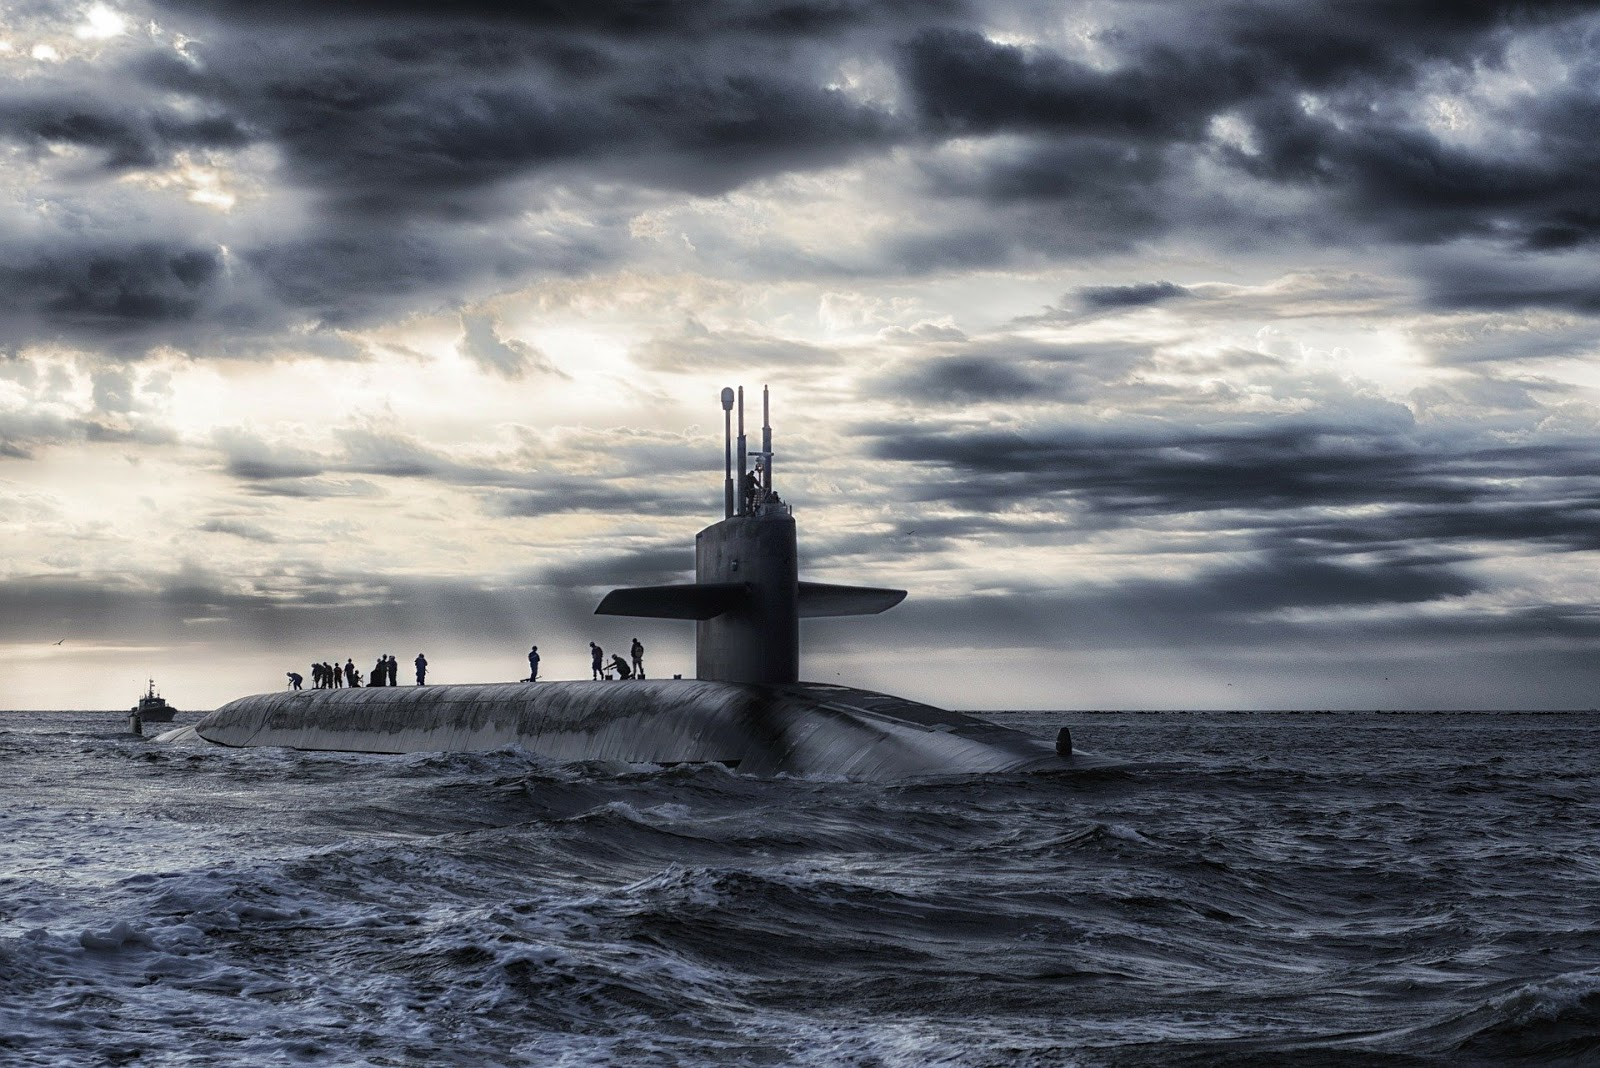 world war 2 submarine on surface of ocean in rough seas for blog post about movie in enemy hands